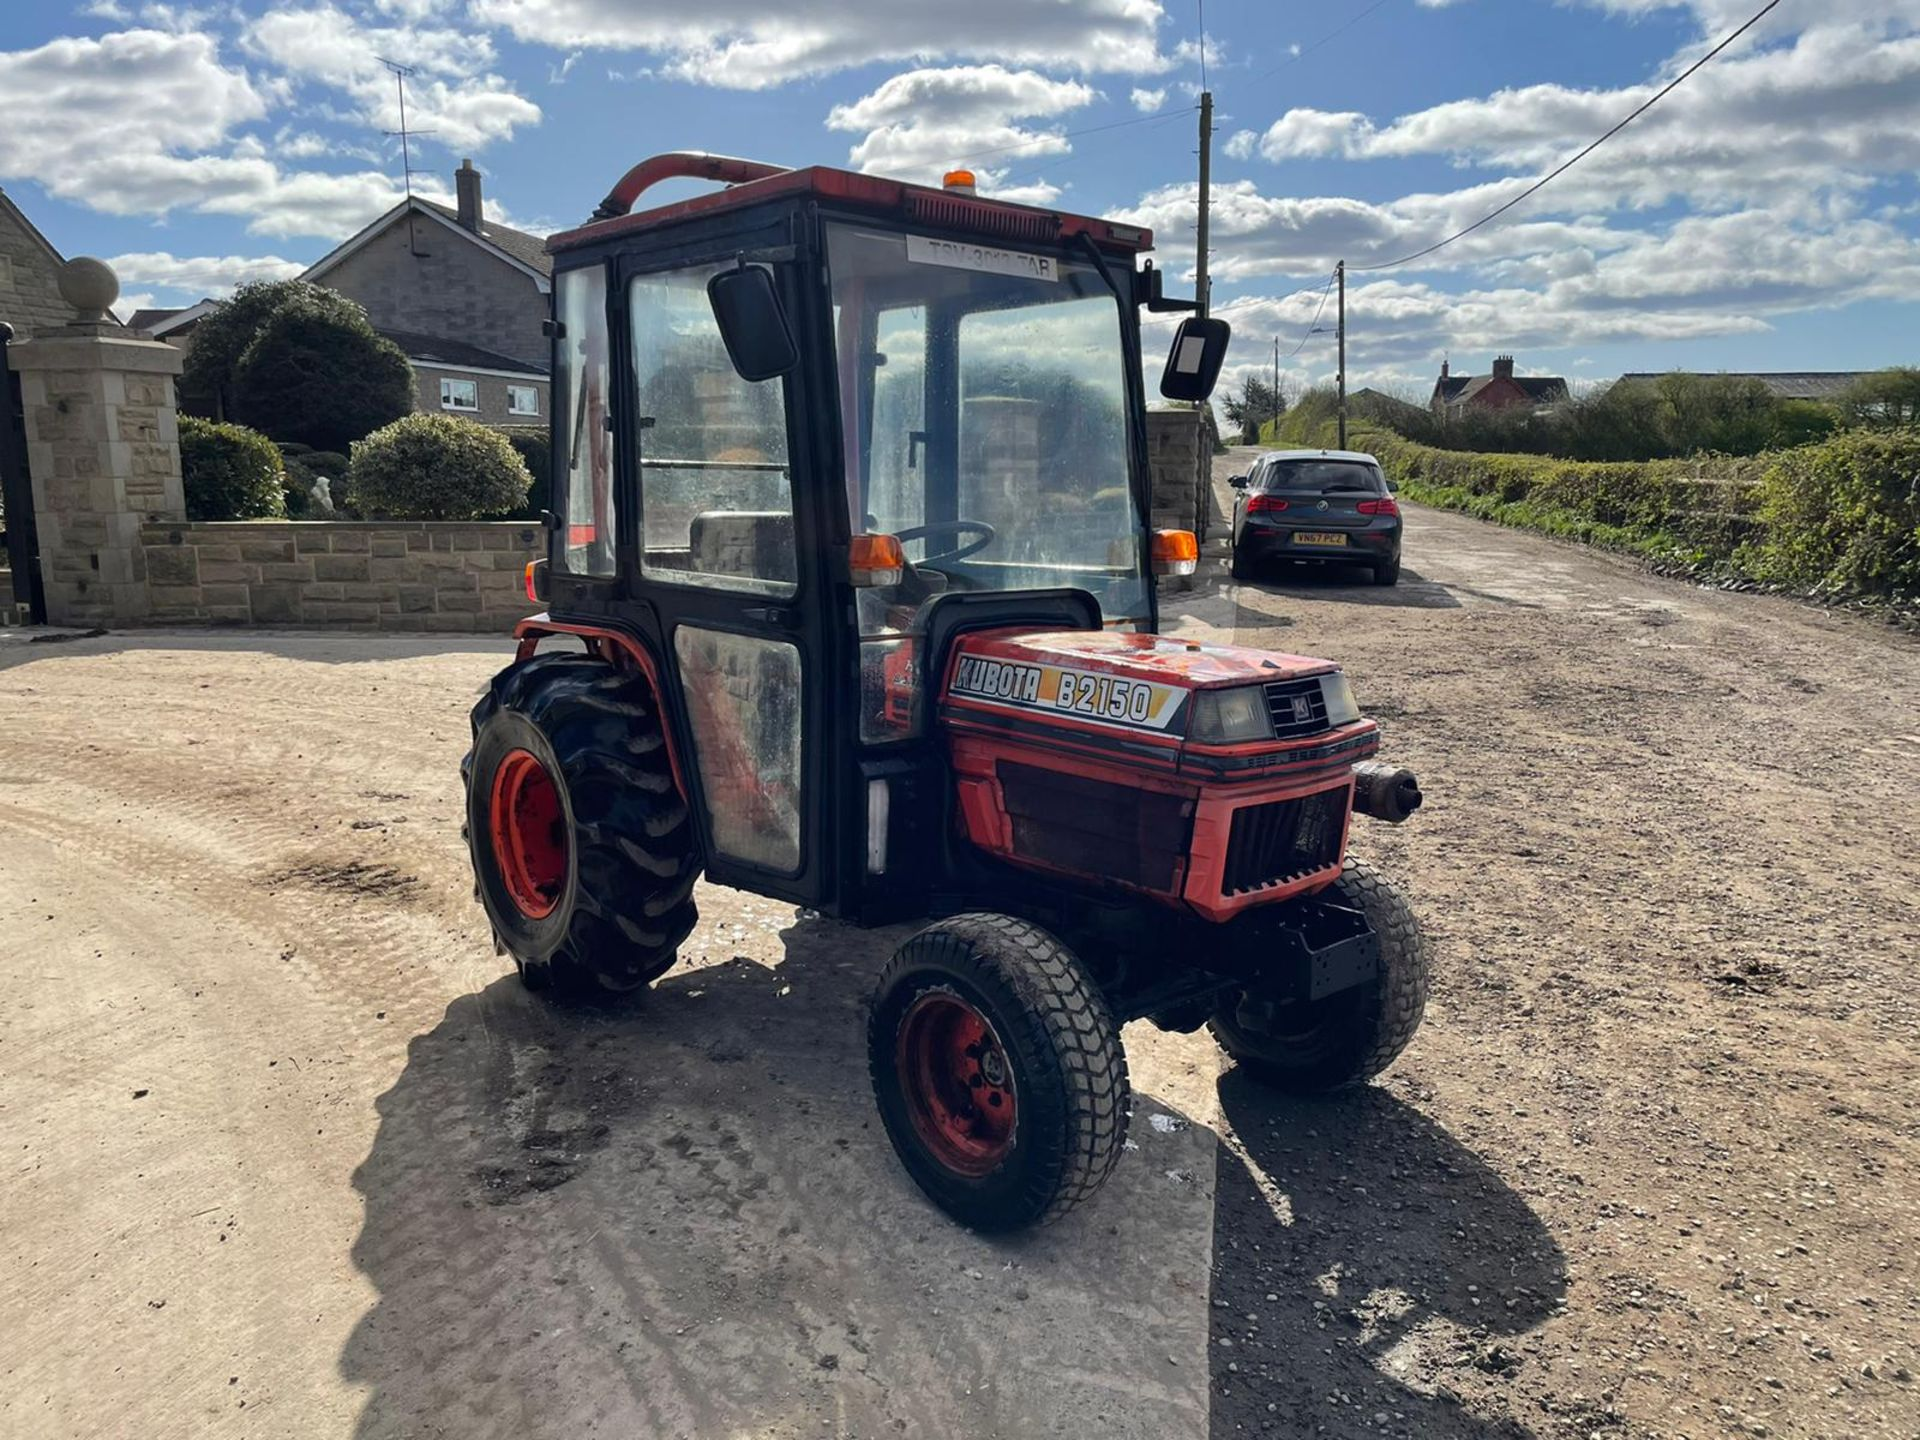 KUBOTA B2150 COMPACT TRACTOR, RUNS AND DRIVES, 3 POINT LINKAGE, 23HP, HYDROSTATIC *PLUS VAT* - Image 4 of 6